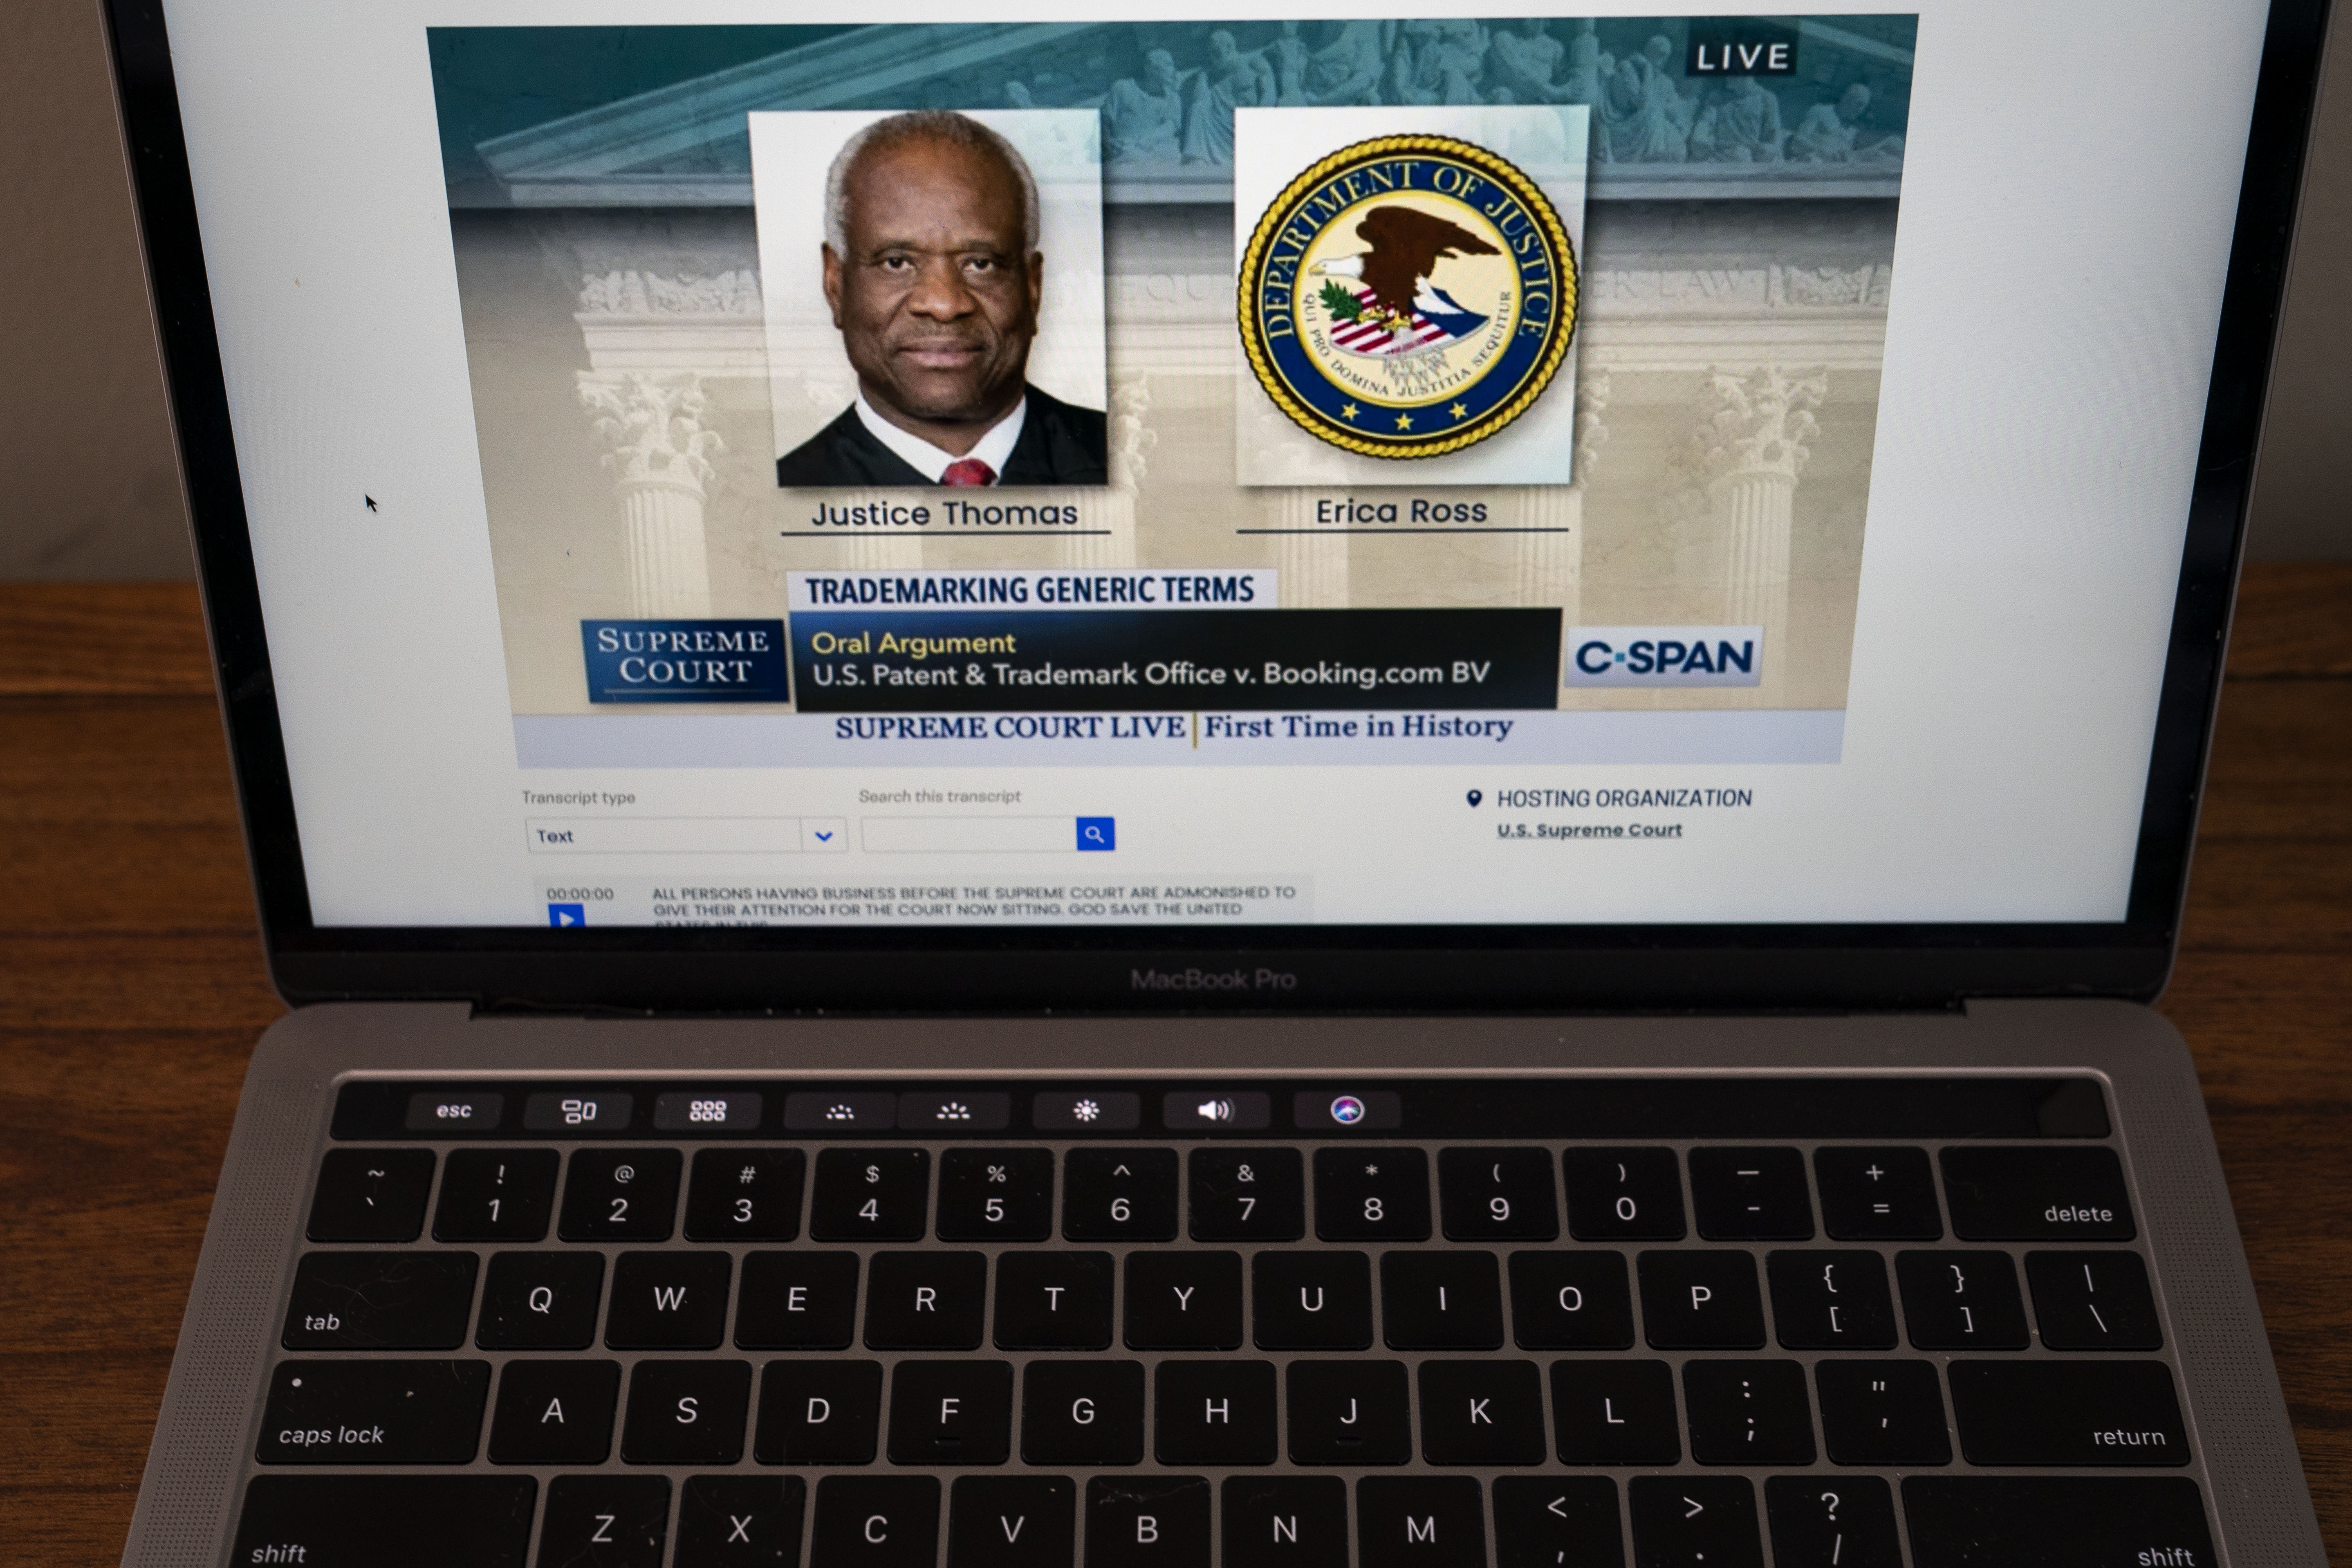 In this illustration photo, Associate Justice Clarence Thomas speaks during oral arguments before the Supreme Court in the case U.S. Patent and Trademark Office v. Booking.com as it is live streamed on a laptop, May 4, 2020 Washington, DC. (Drew Angerer/Getty Images)